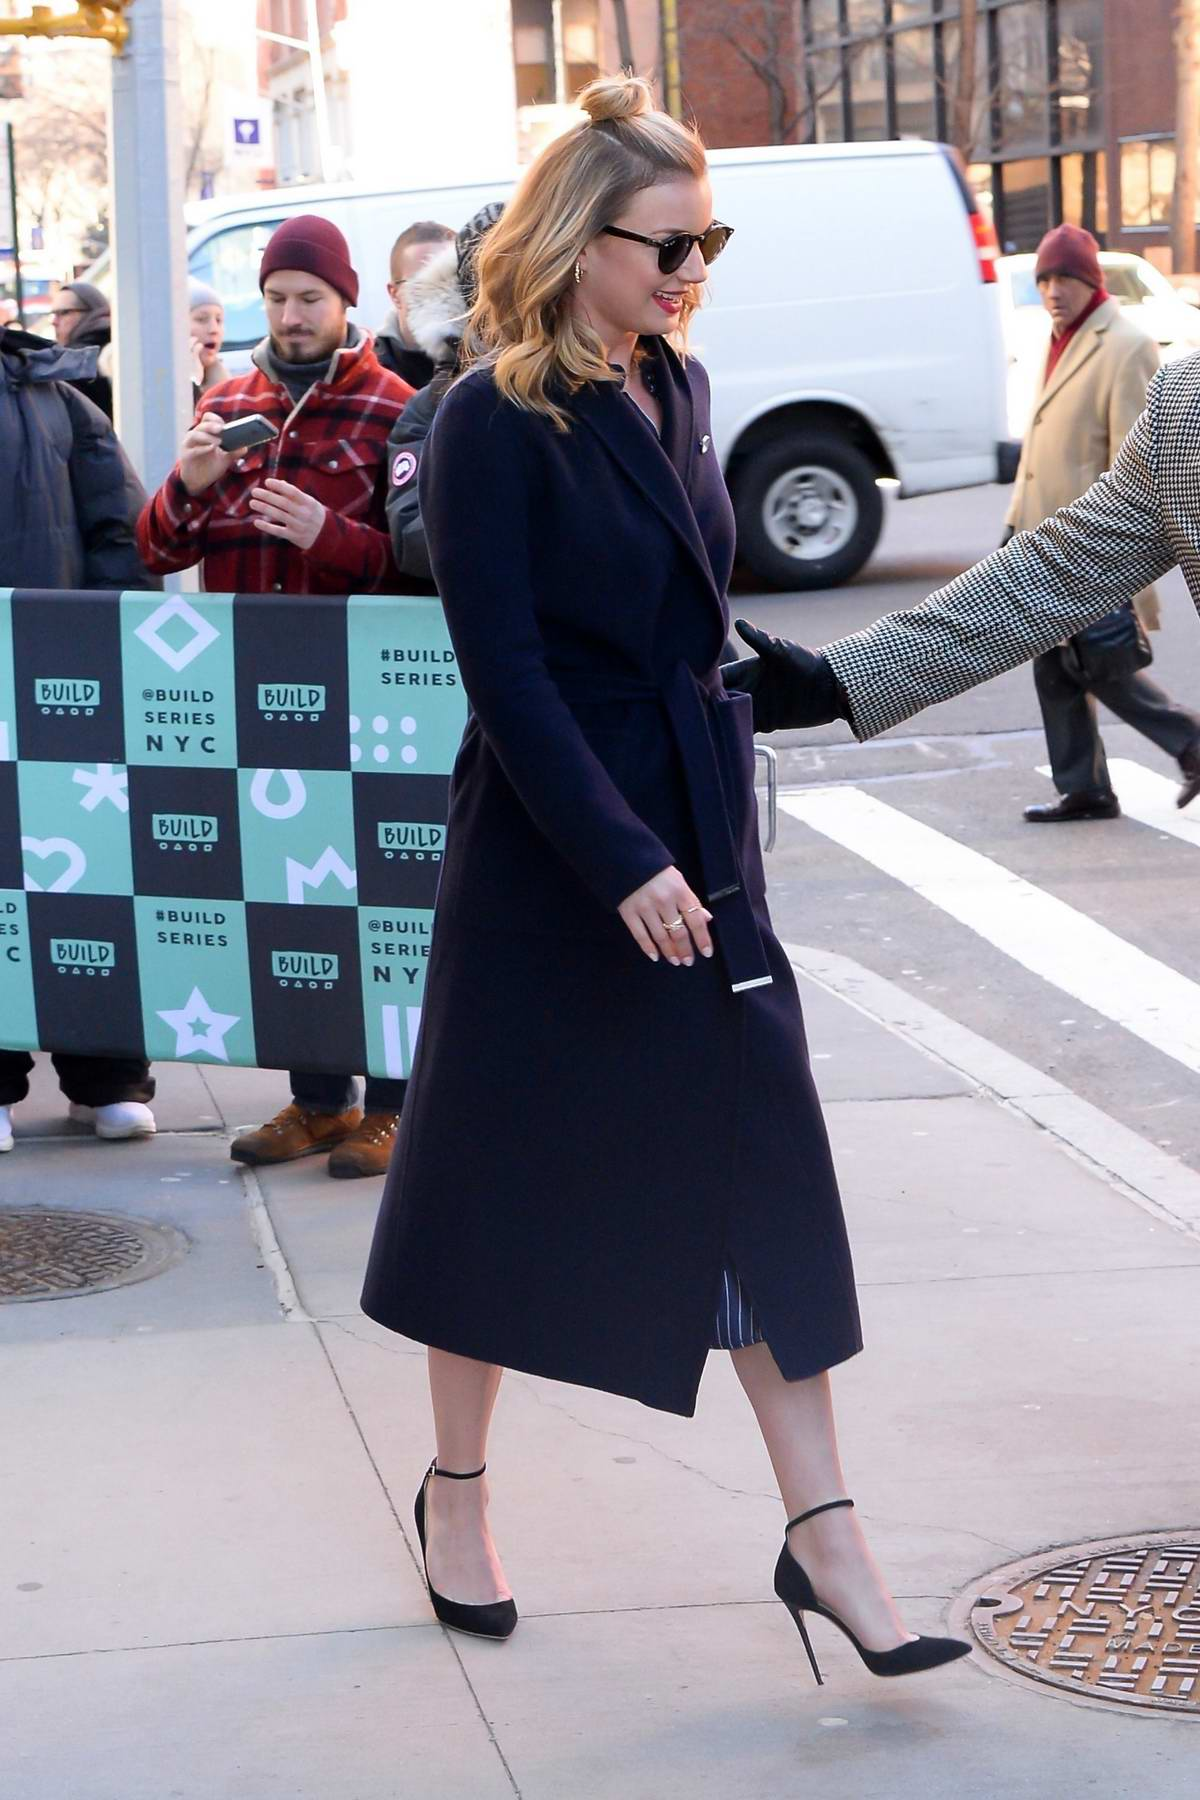 Emily VanCamp seen as she leaves AOL Build Studios in New York City